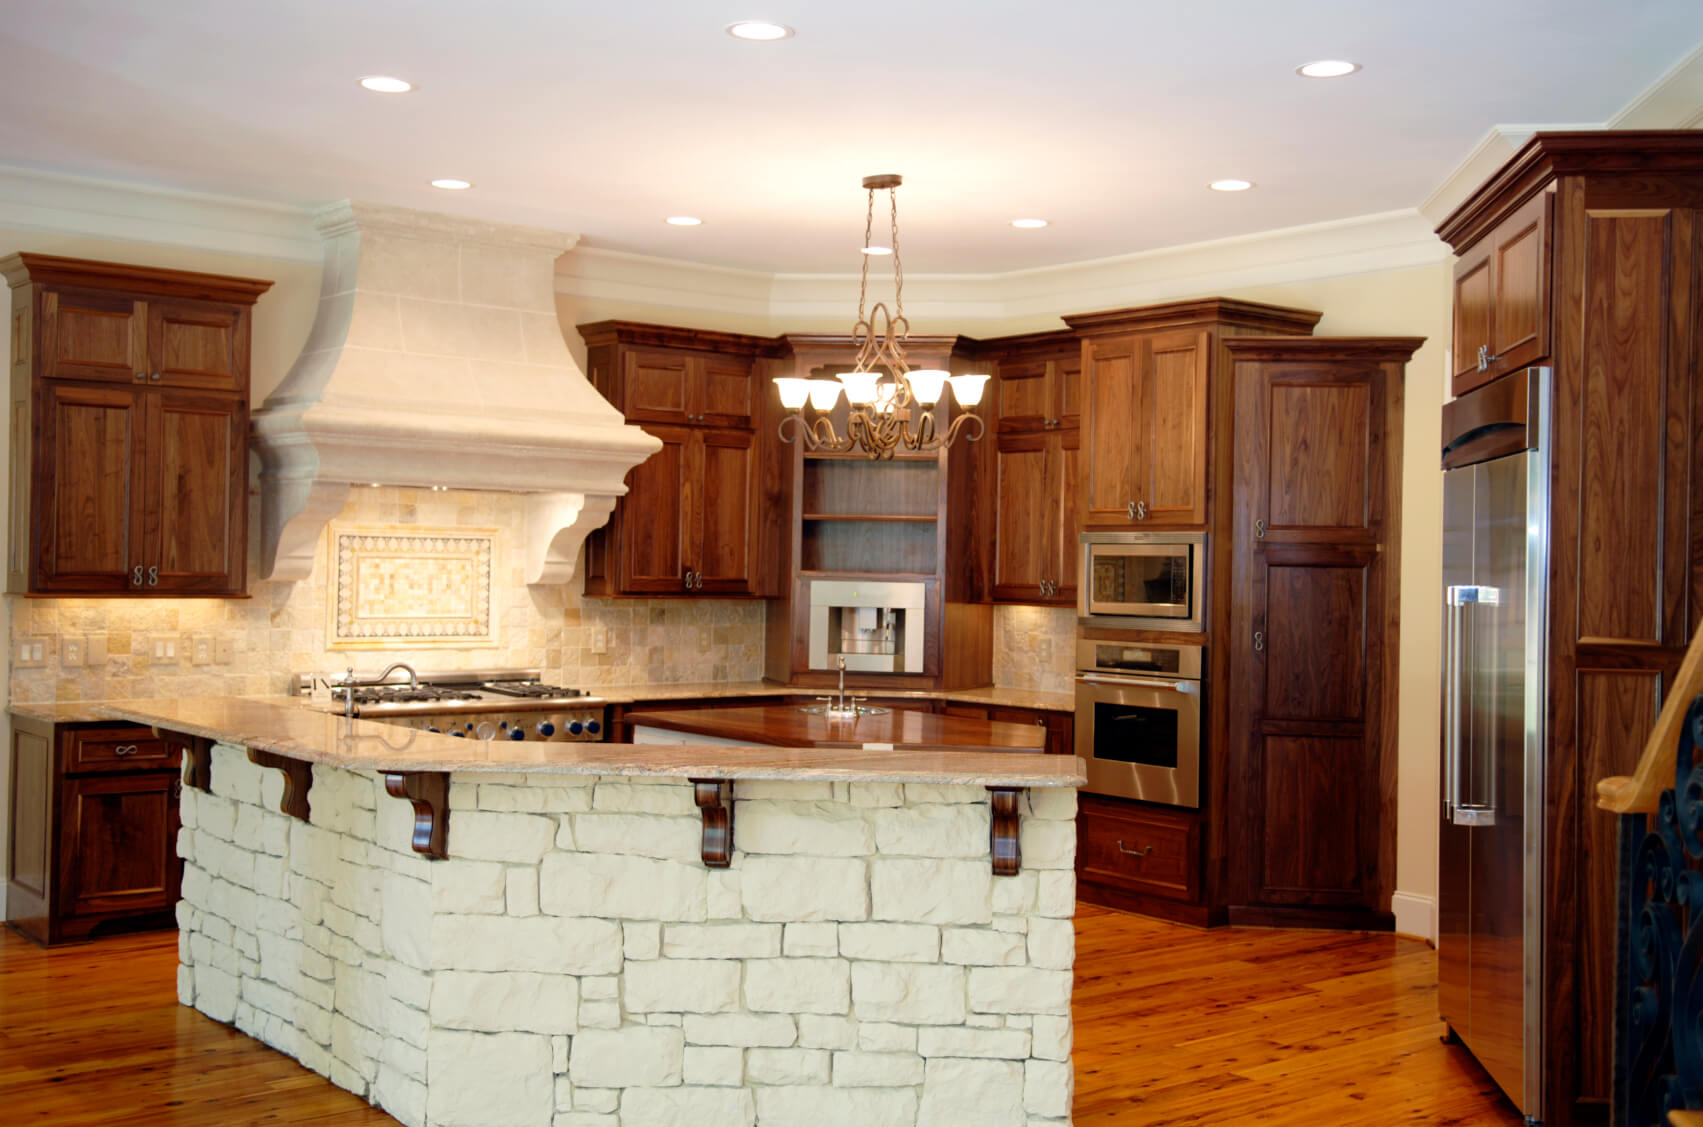 Unique, white stone island with marble countertop stands apart in this kitchen flush with natural wood tones.